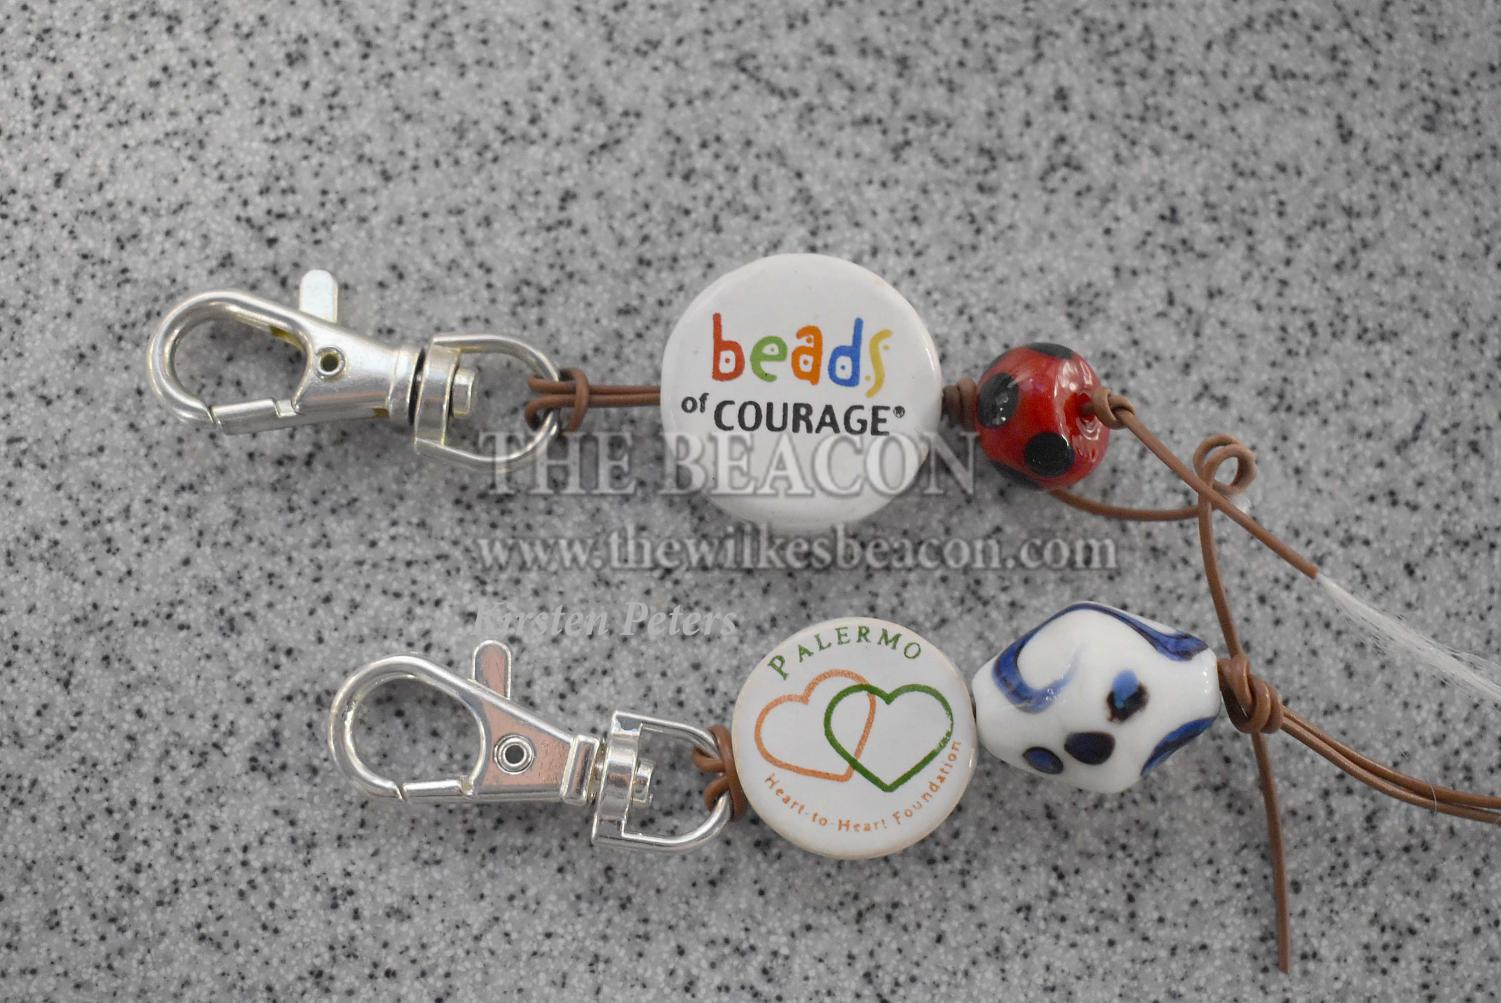 Wilkes football is participating in the Beads of Courage charity by displaying their beads on keychains or backpacks.